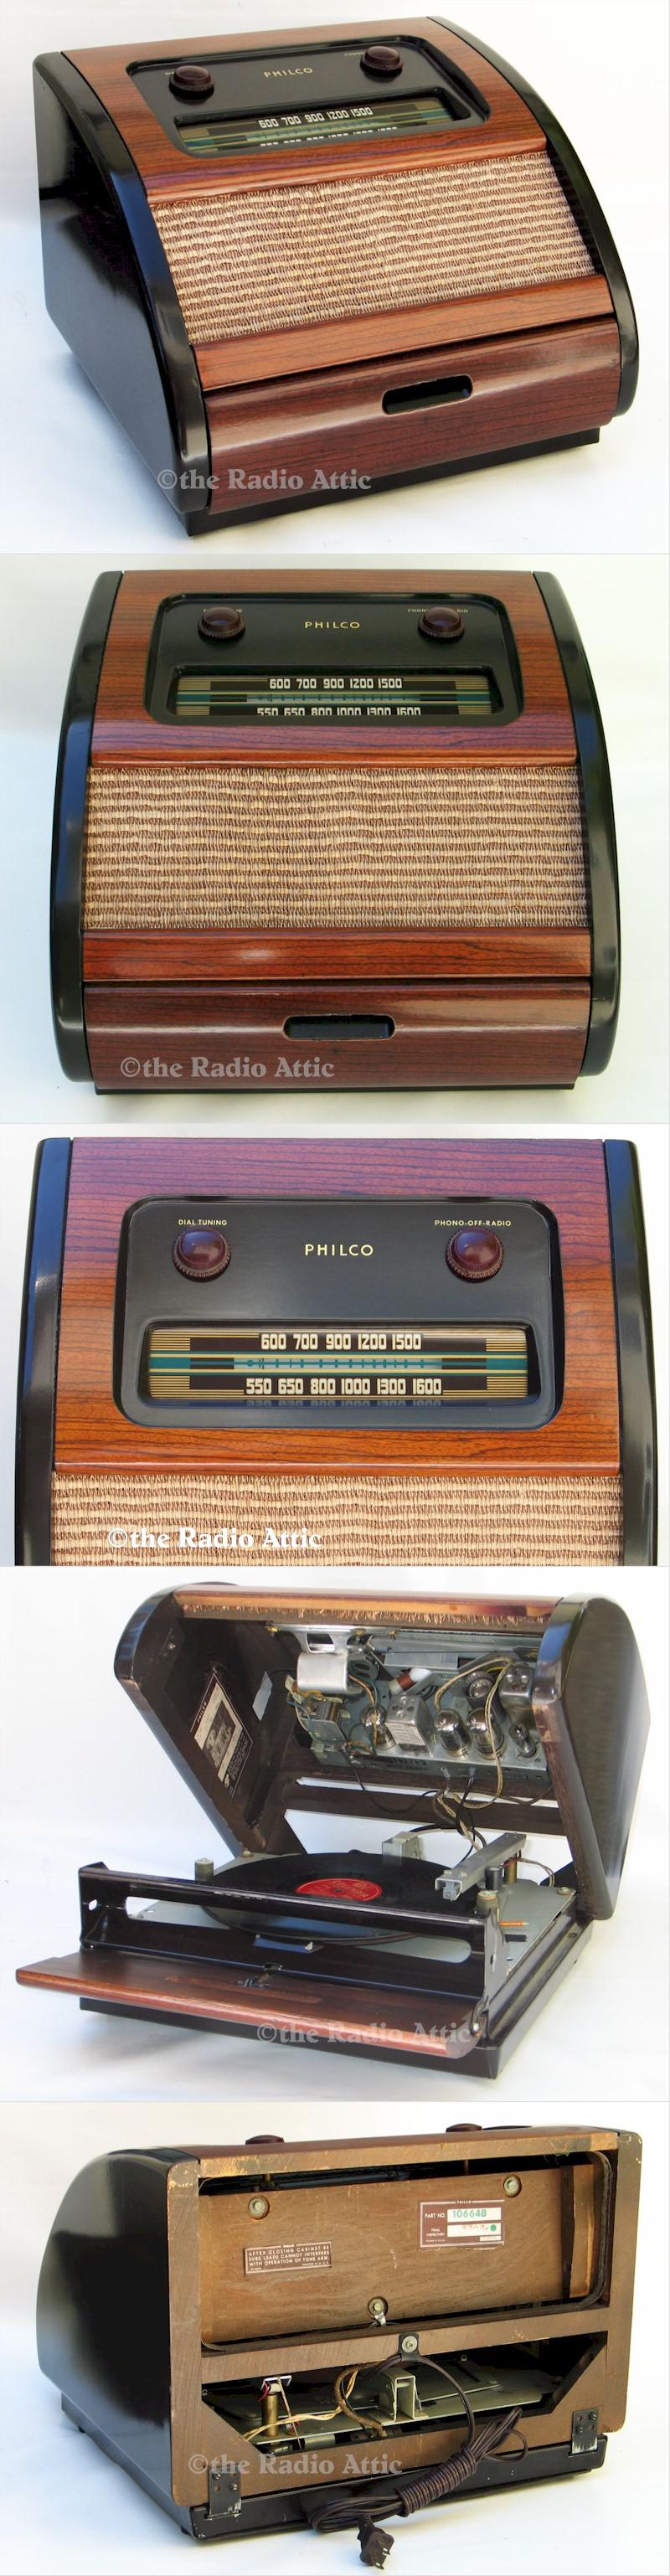 "Philco 46-1201 ""Bing Crosby"" Radio-Phono"